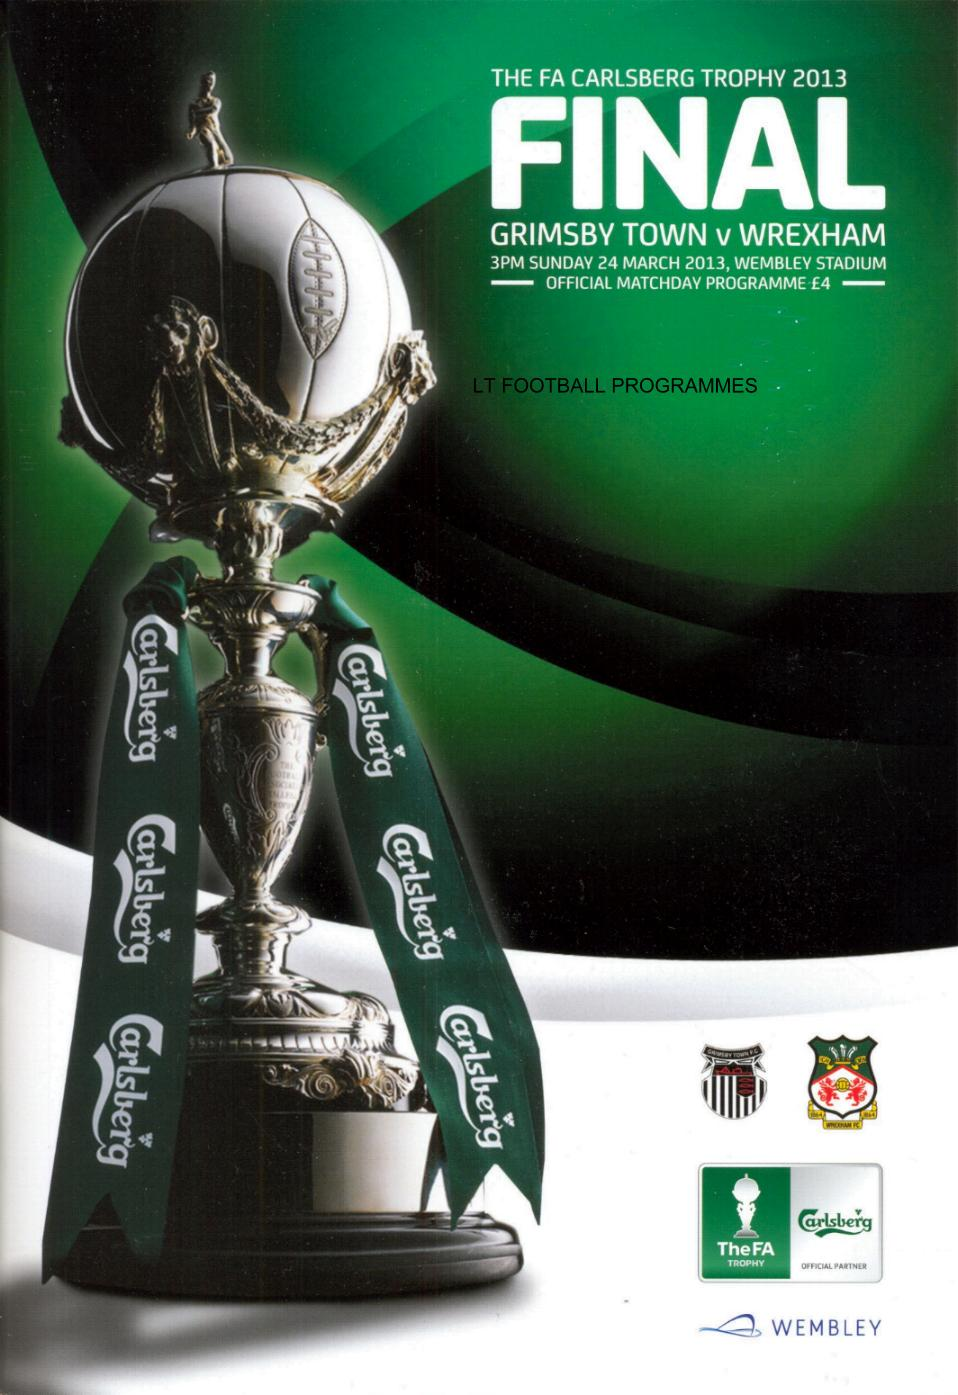 2013 FA TROPHY FINAL - GRIMSBY TOWN v WREXHAM